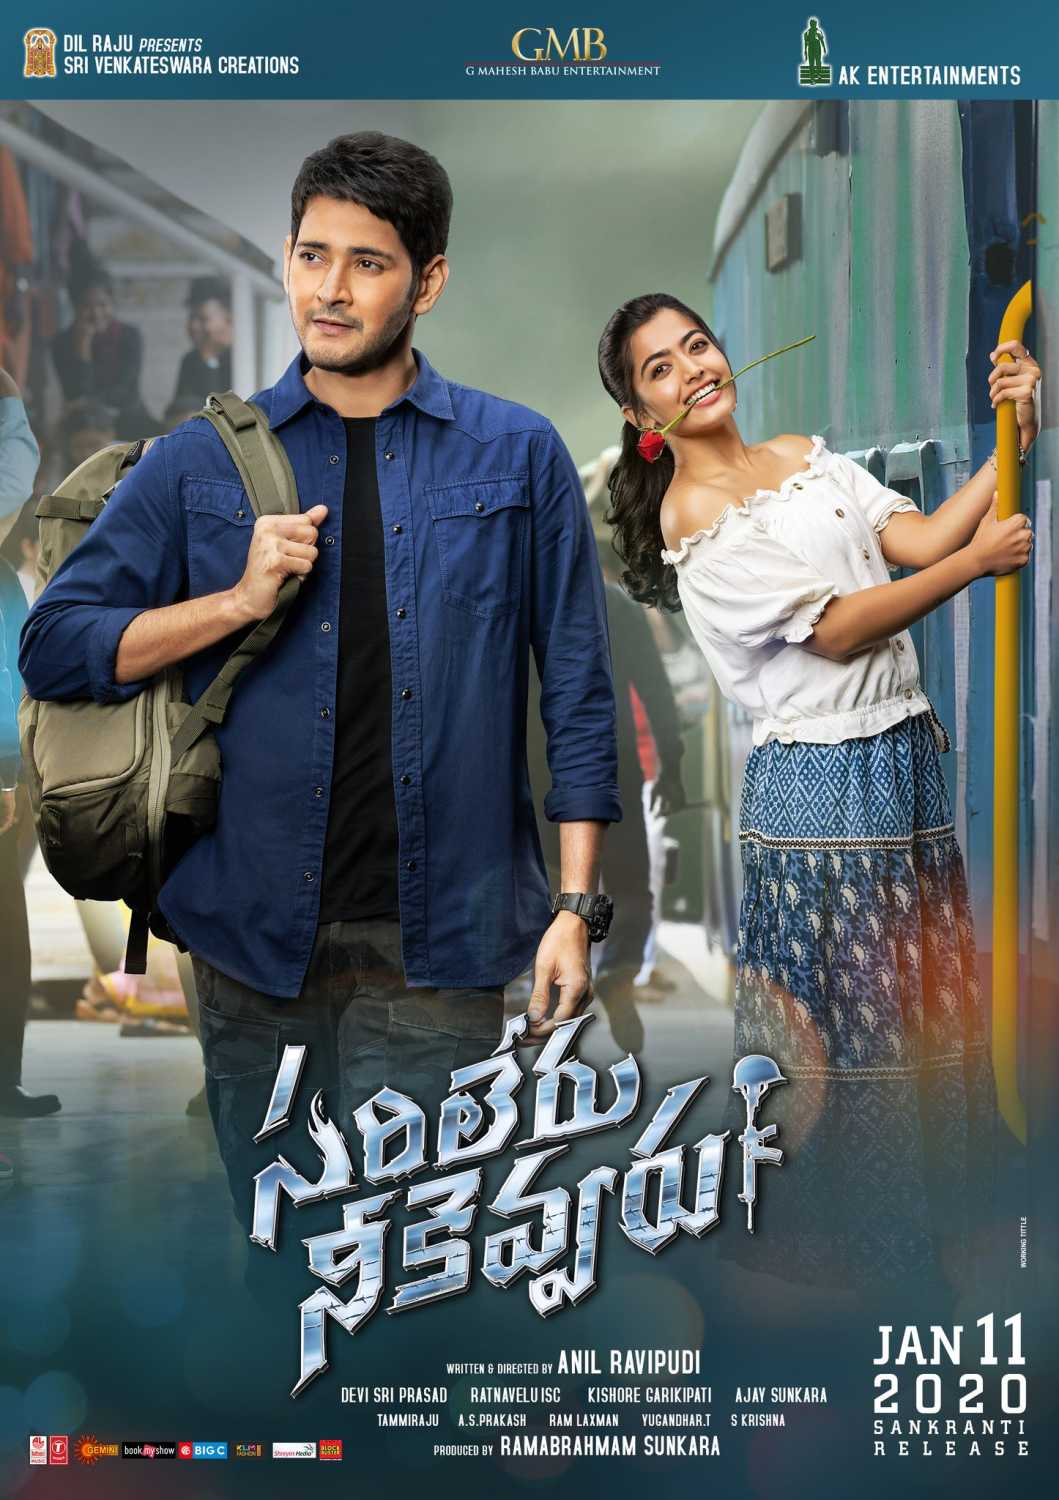 Sarileru Neekevvaru 2020 Hindi Dubbed Movie HDRip Download